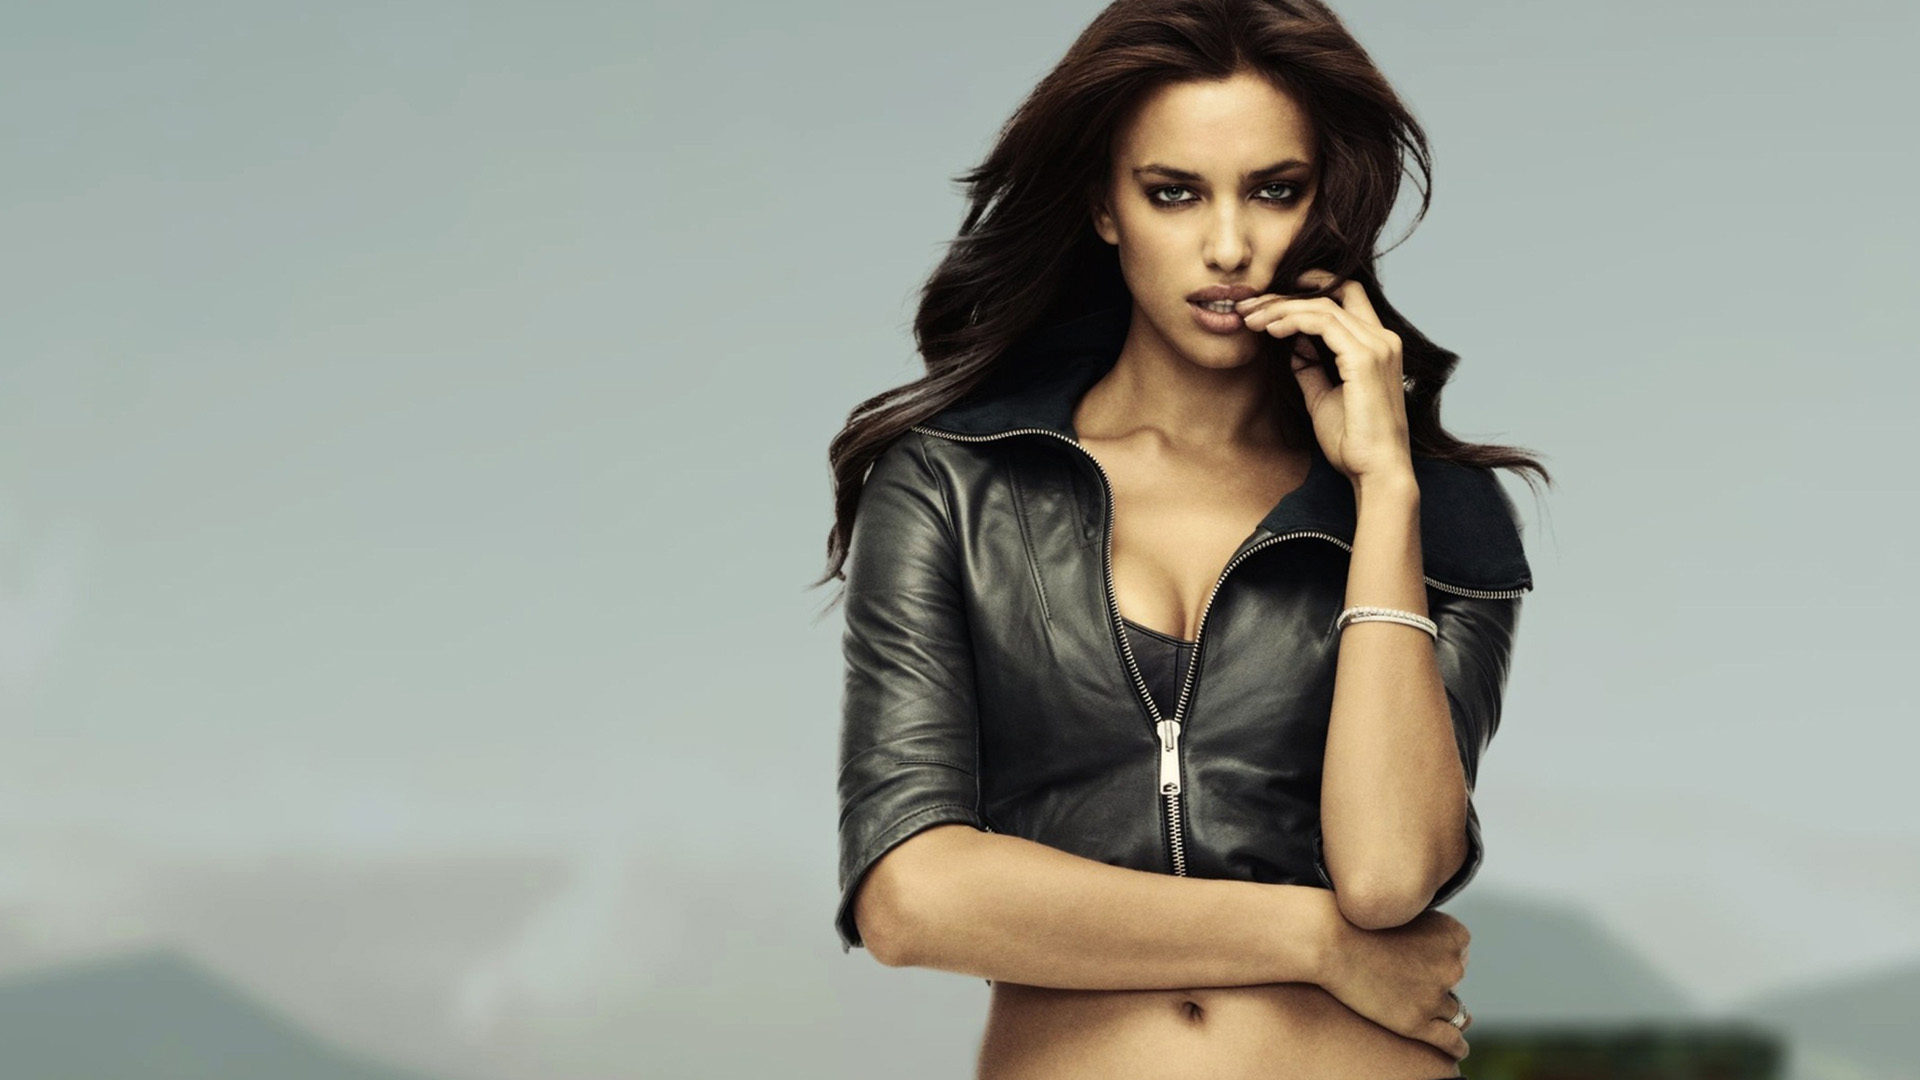 hot irina shayk desktop wallpaper 52074 1920x1080 px